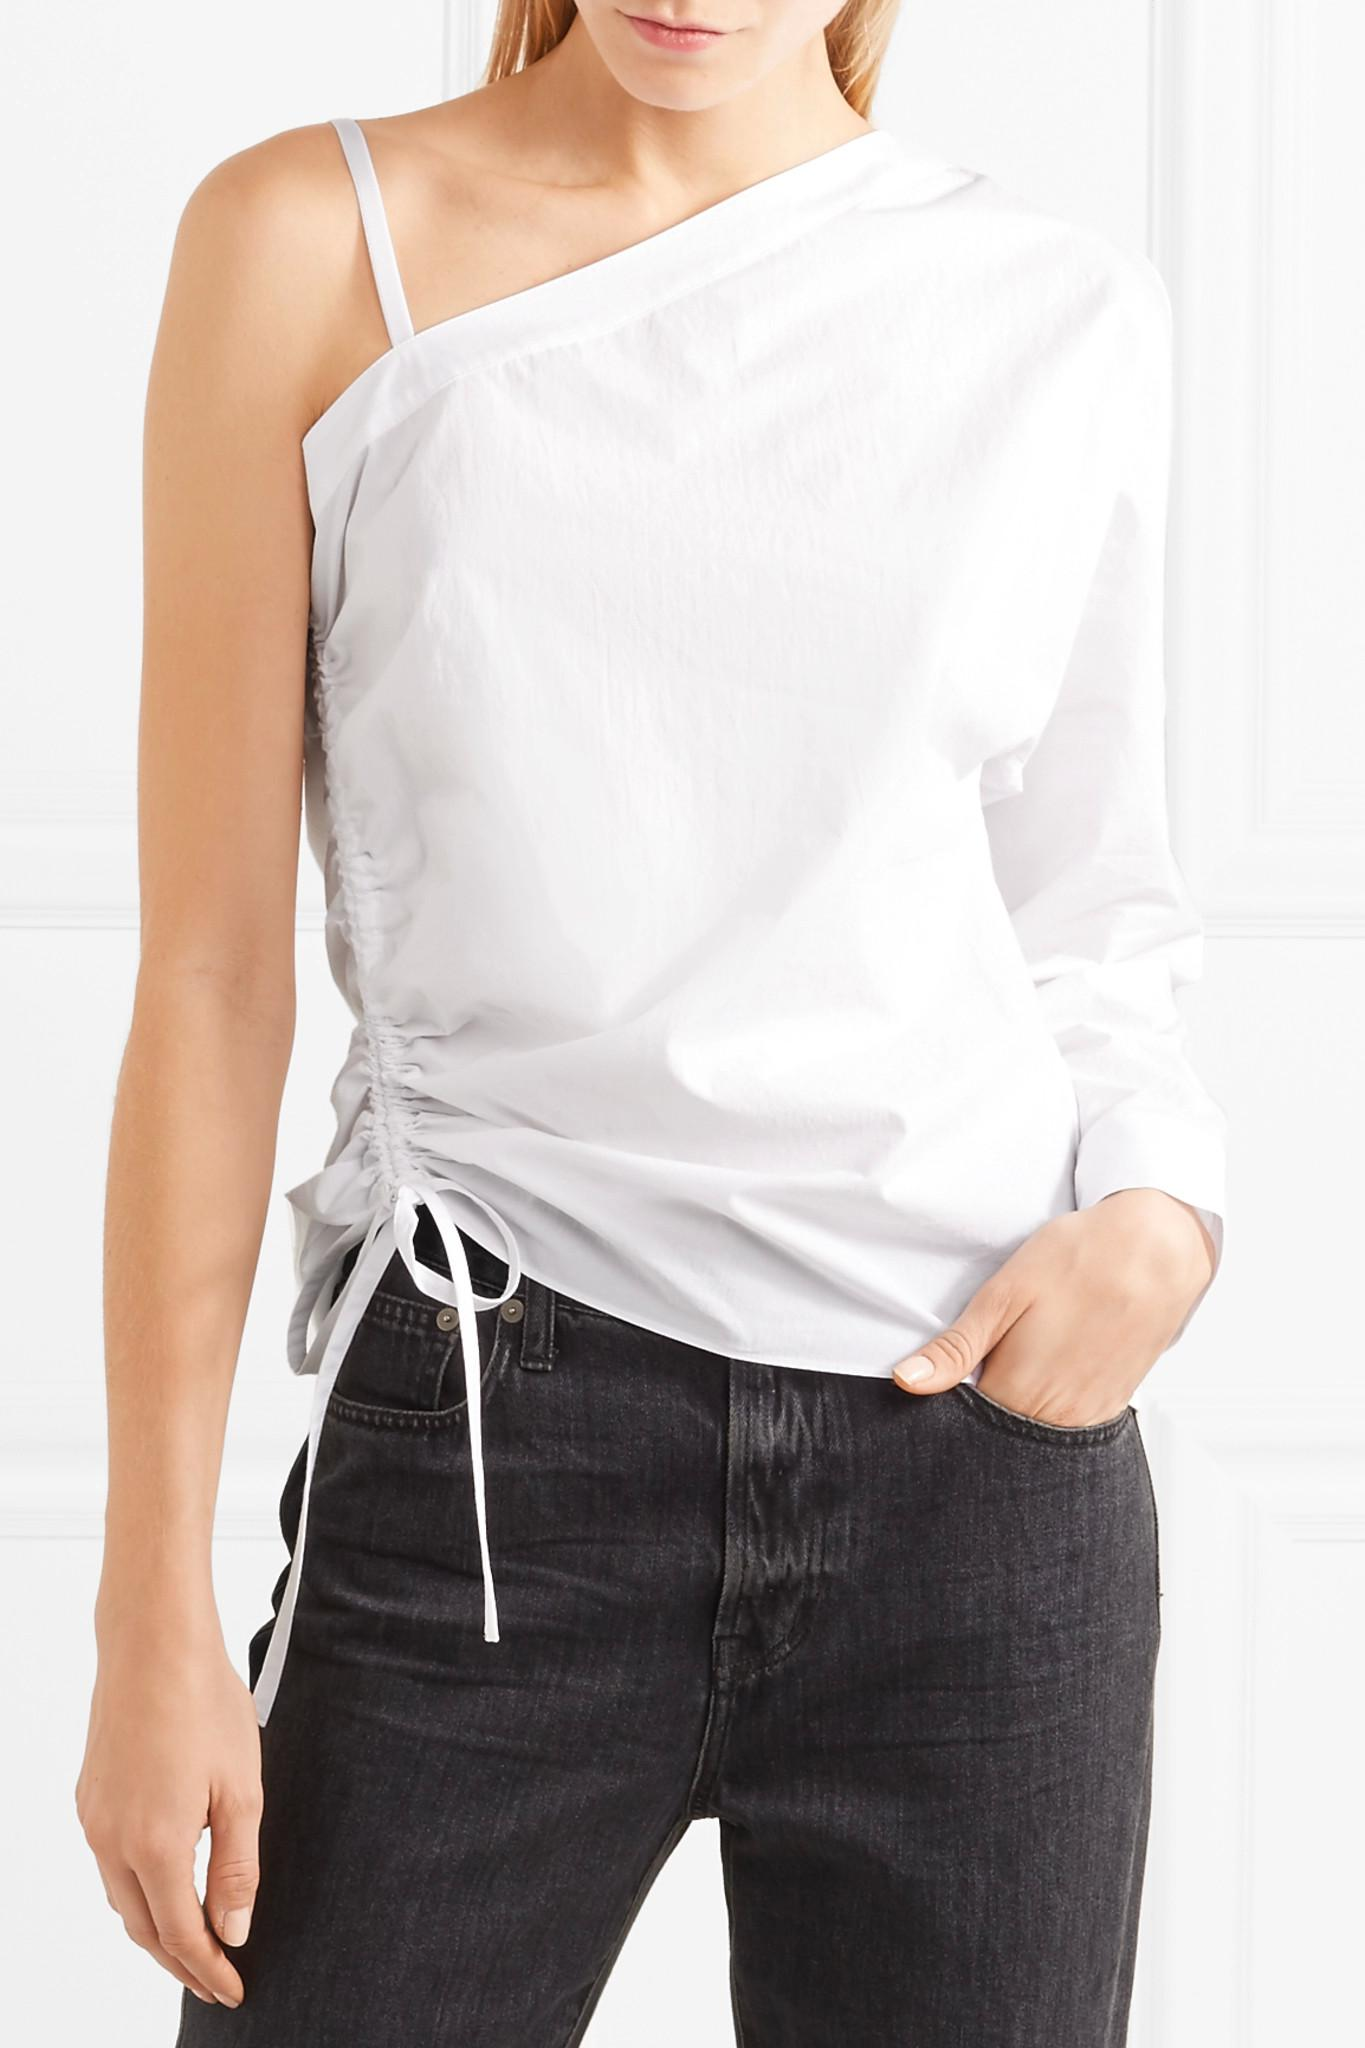 One-shoulder Cotton-poplin Top - White Alexander Wang Cheap Real Eastbay Sale Low Price Extremely Cheap Price Outlet Pick A Best EGPQMT